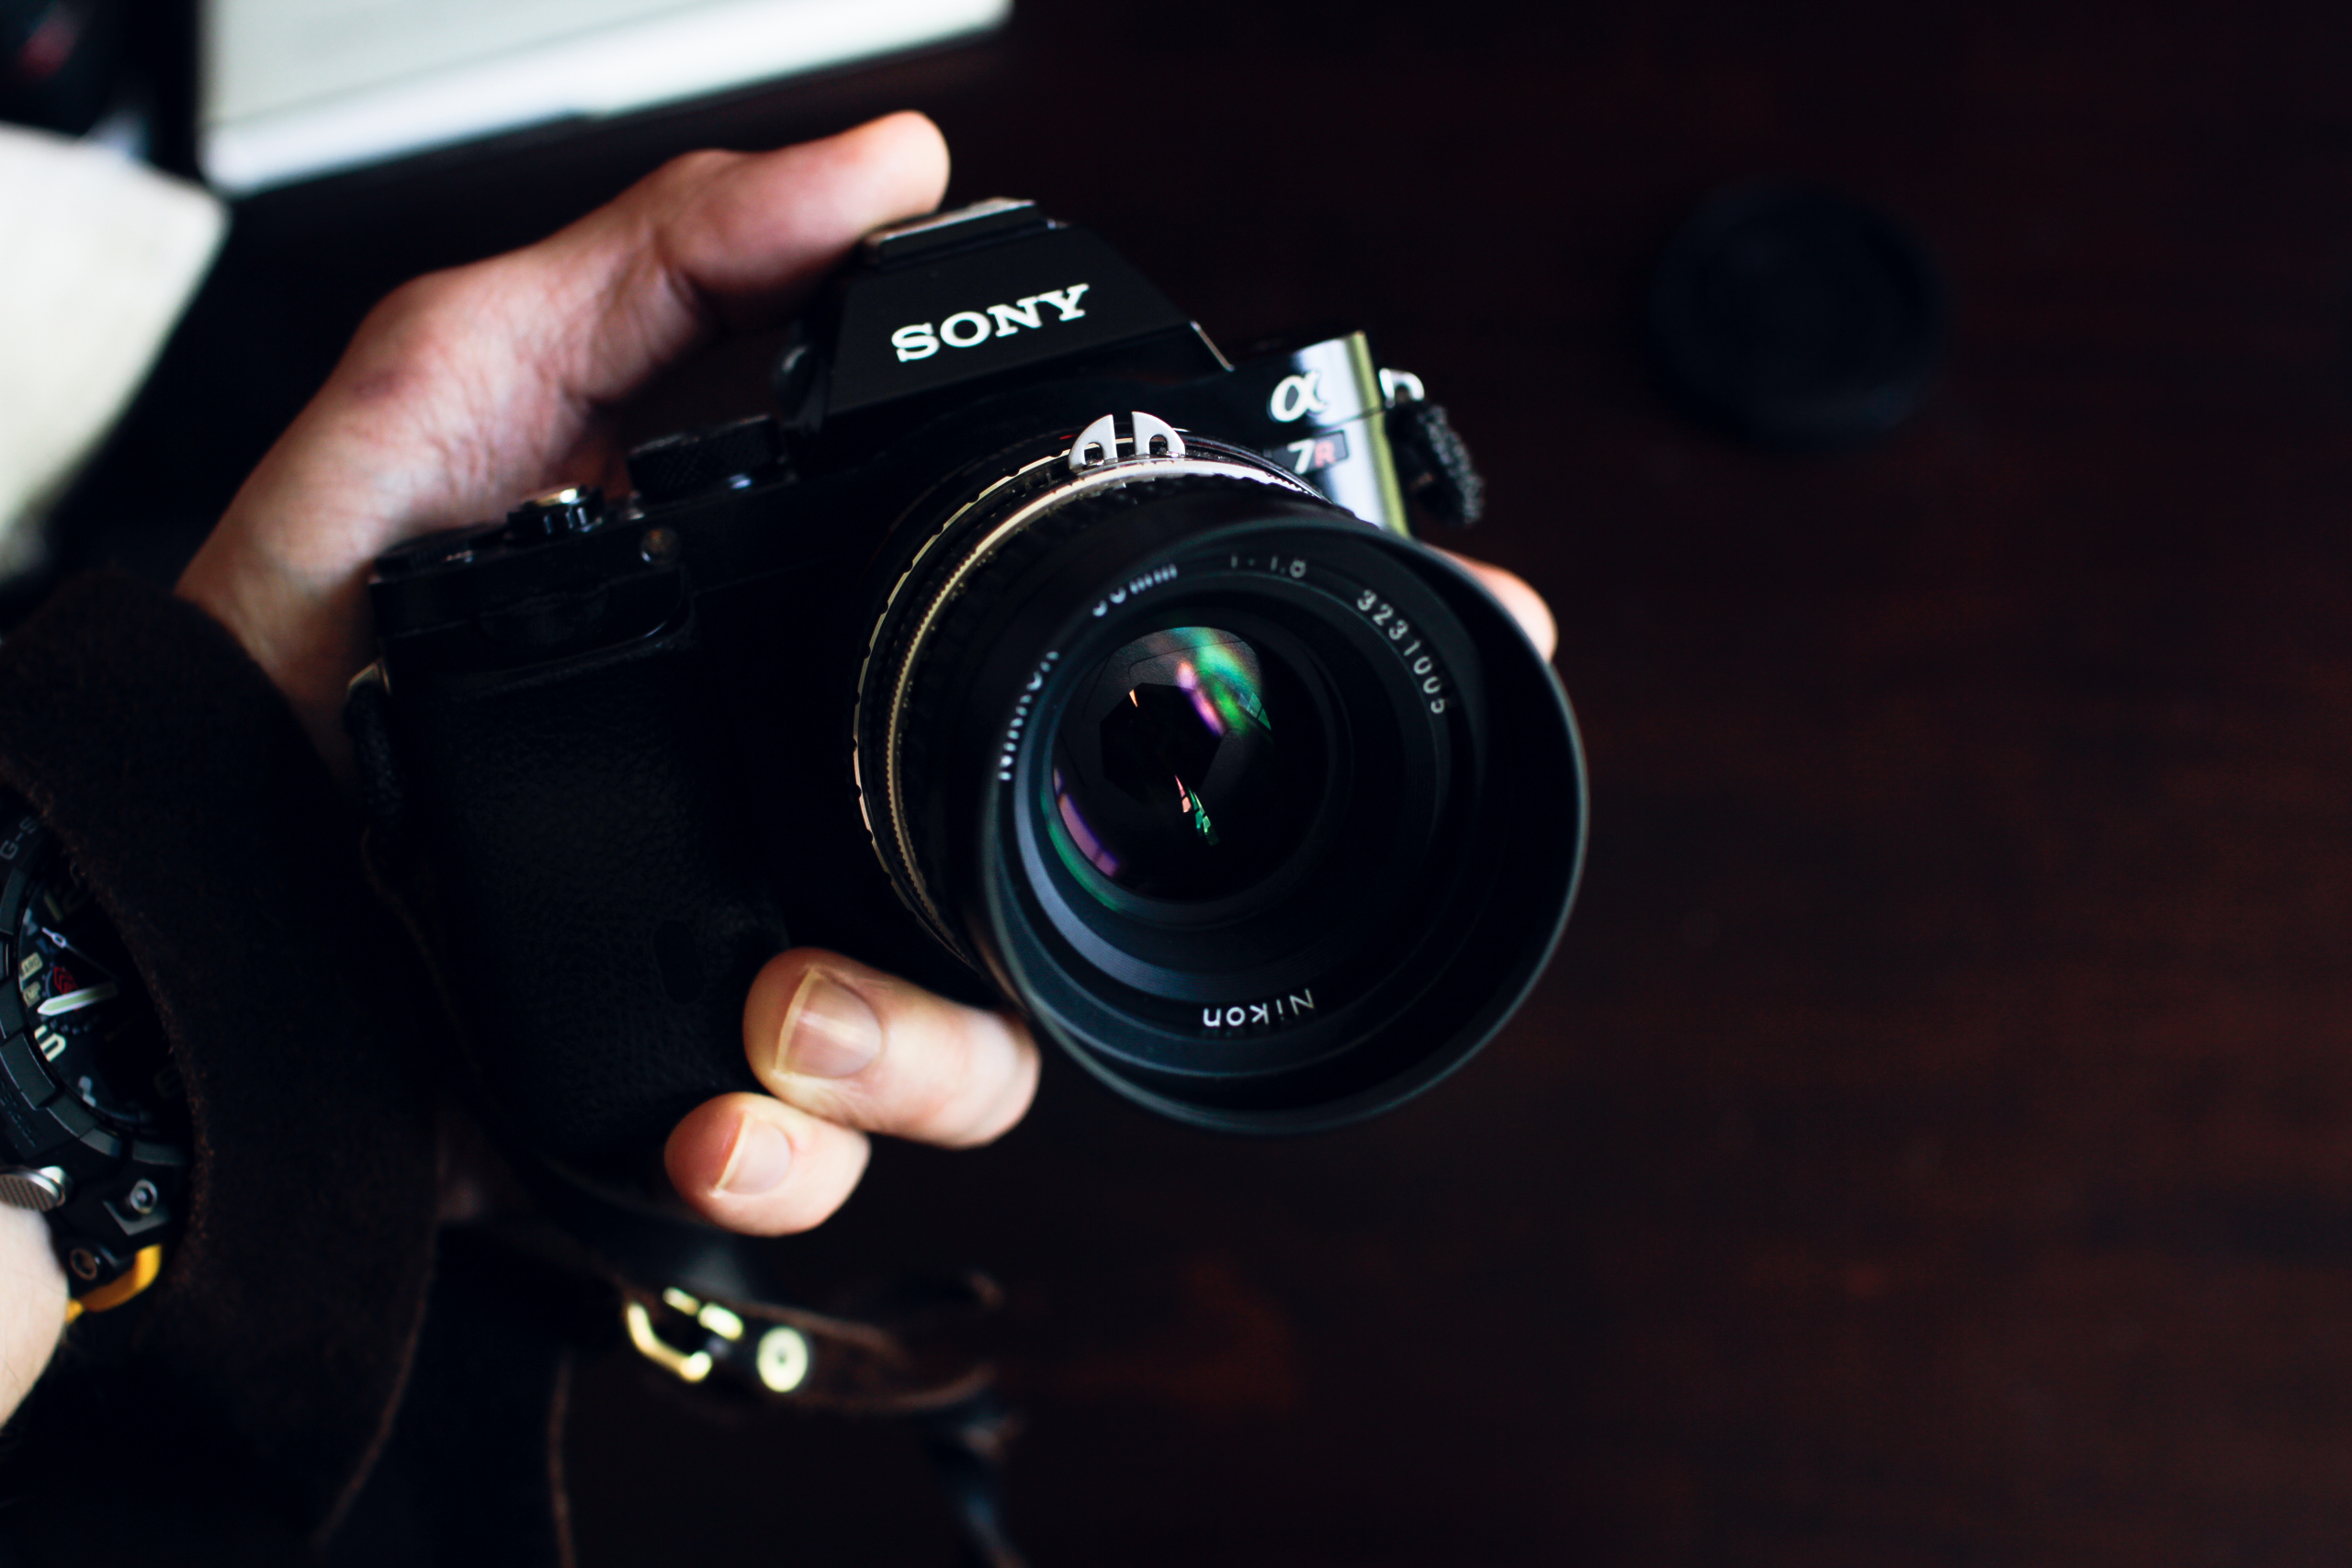 Vintage Nikkor 50mm lens mounted to Sony A7R